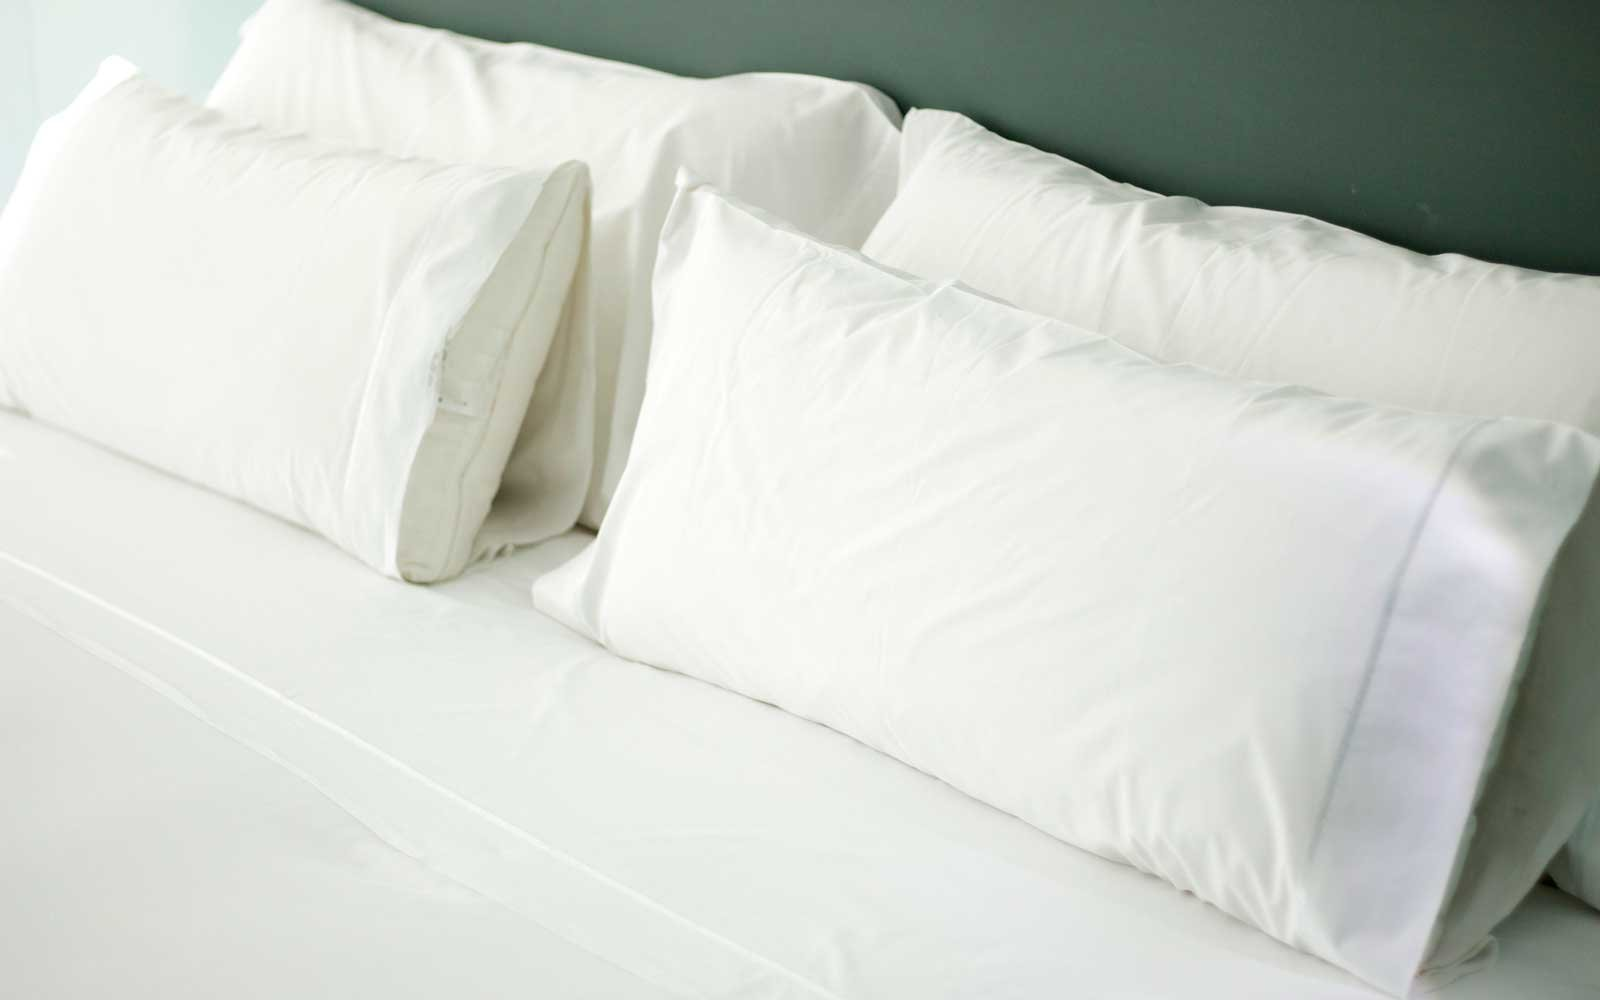 white bed sheets. Hotel Bed White Sheets S